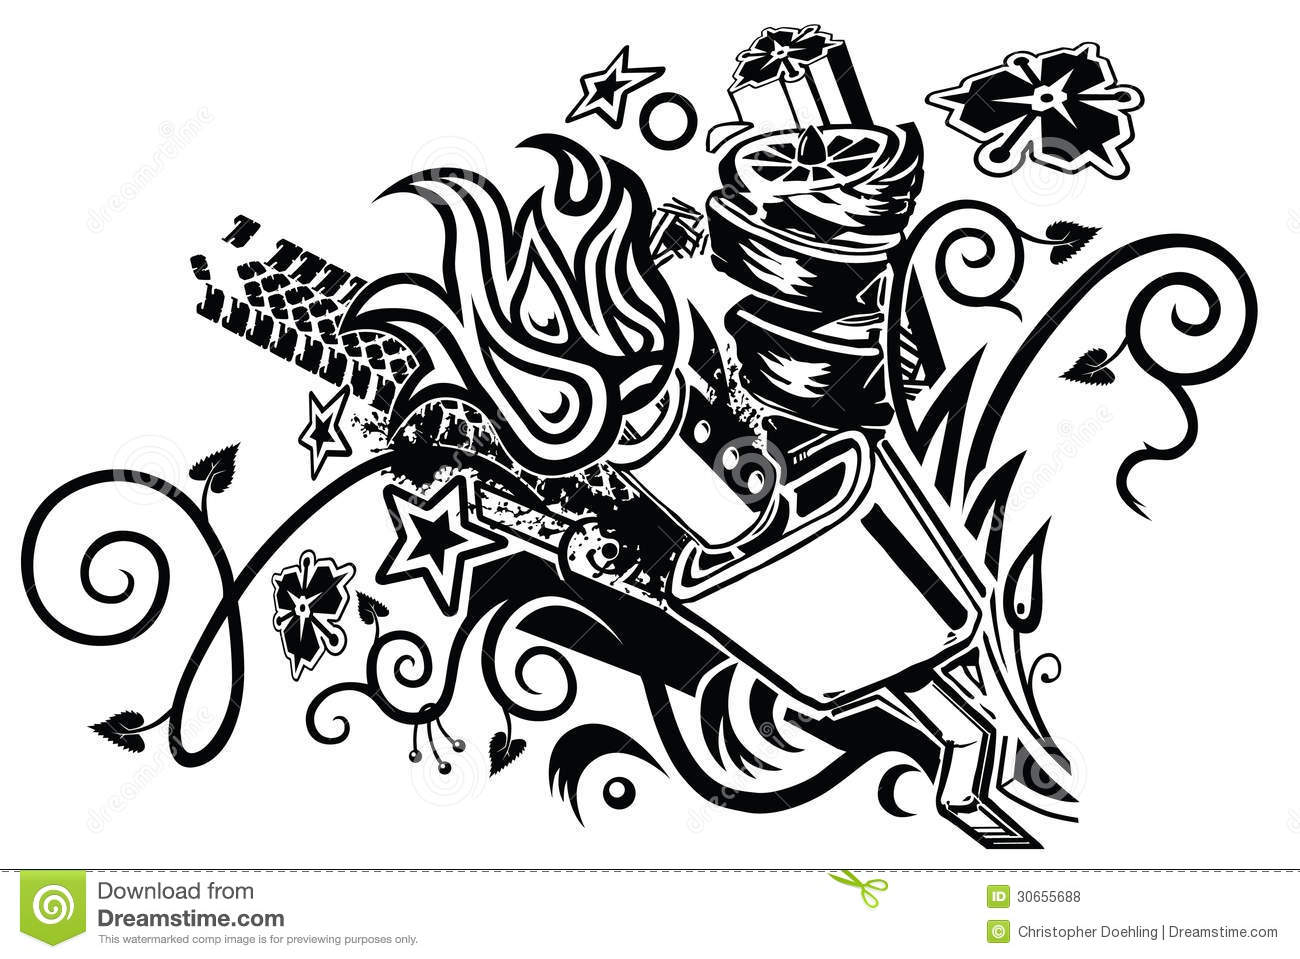 Muffler Explosion Tattoo Stock Vector Illustration Of